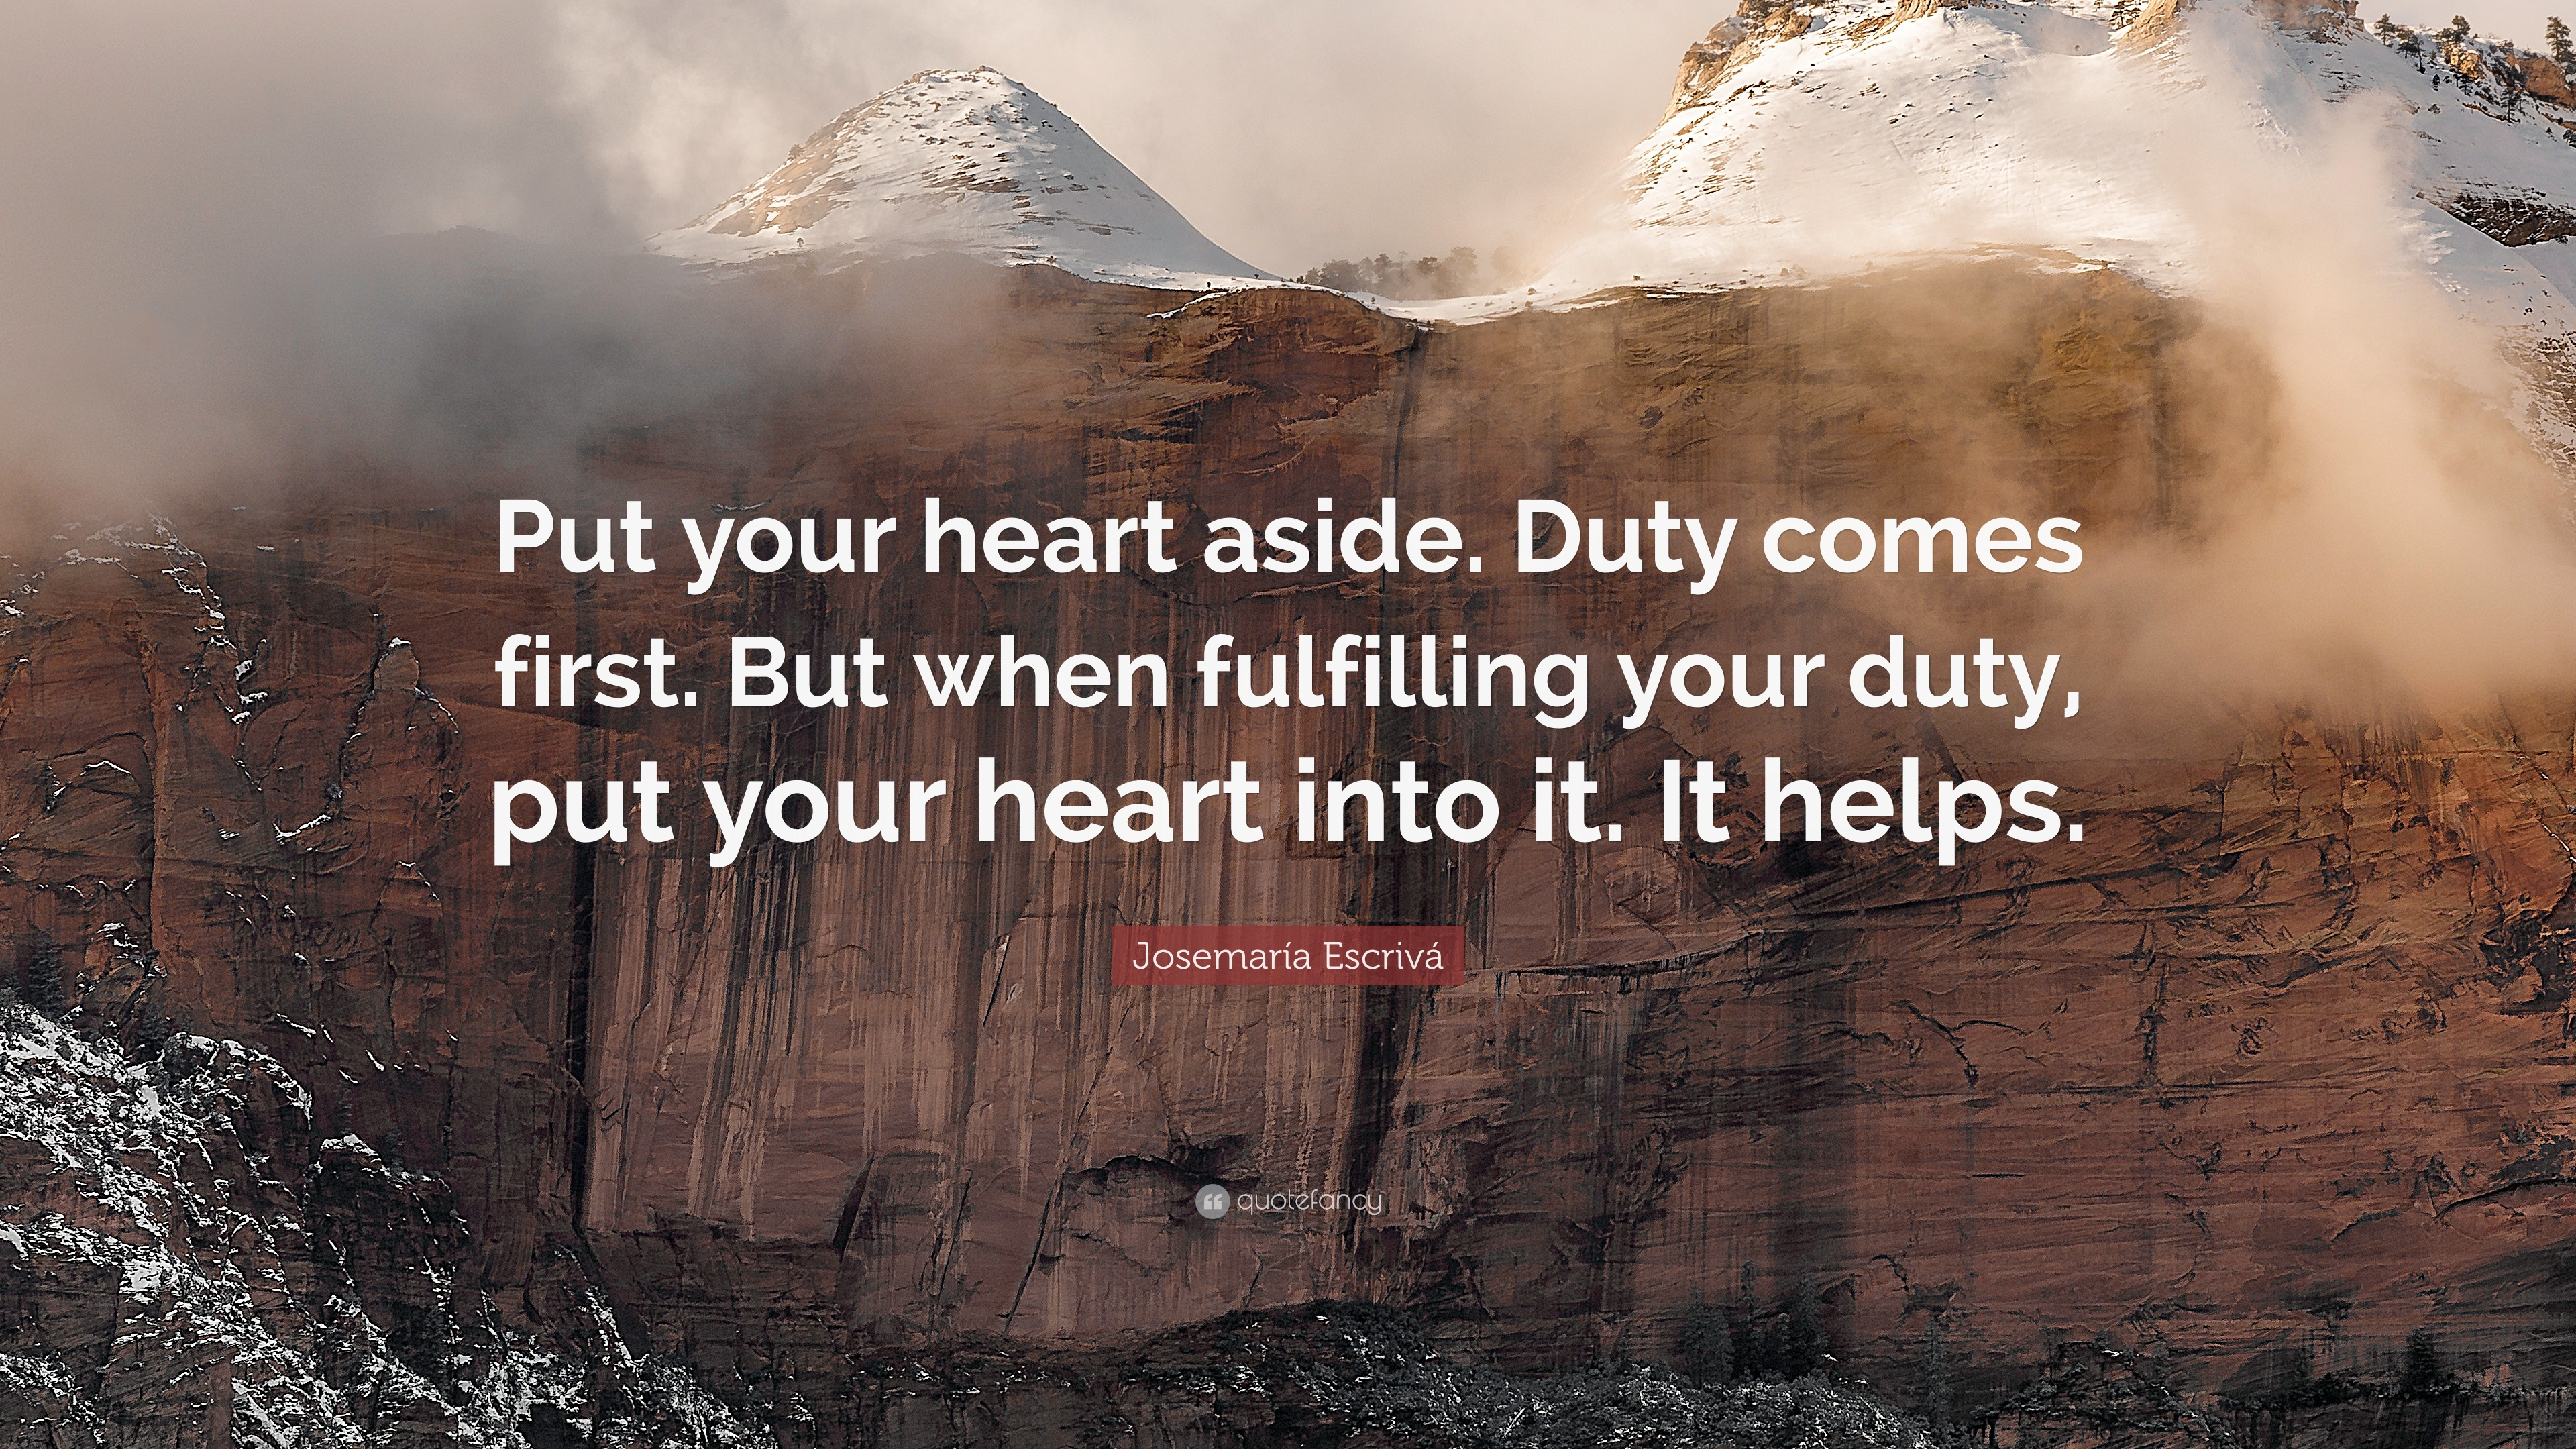 Duty comes first